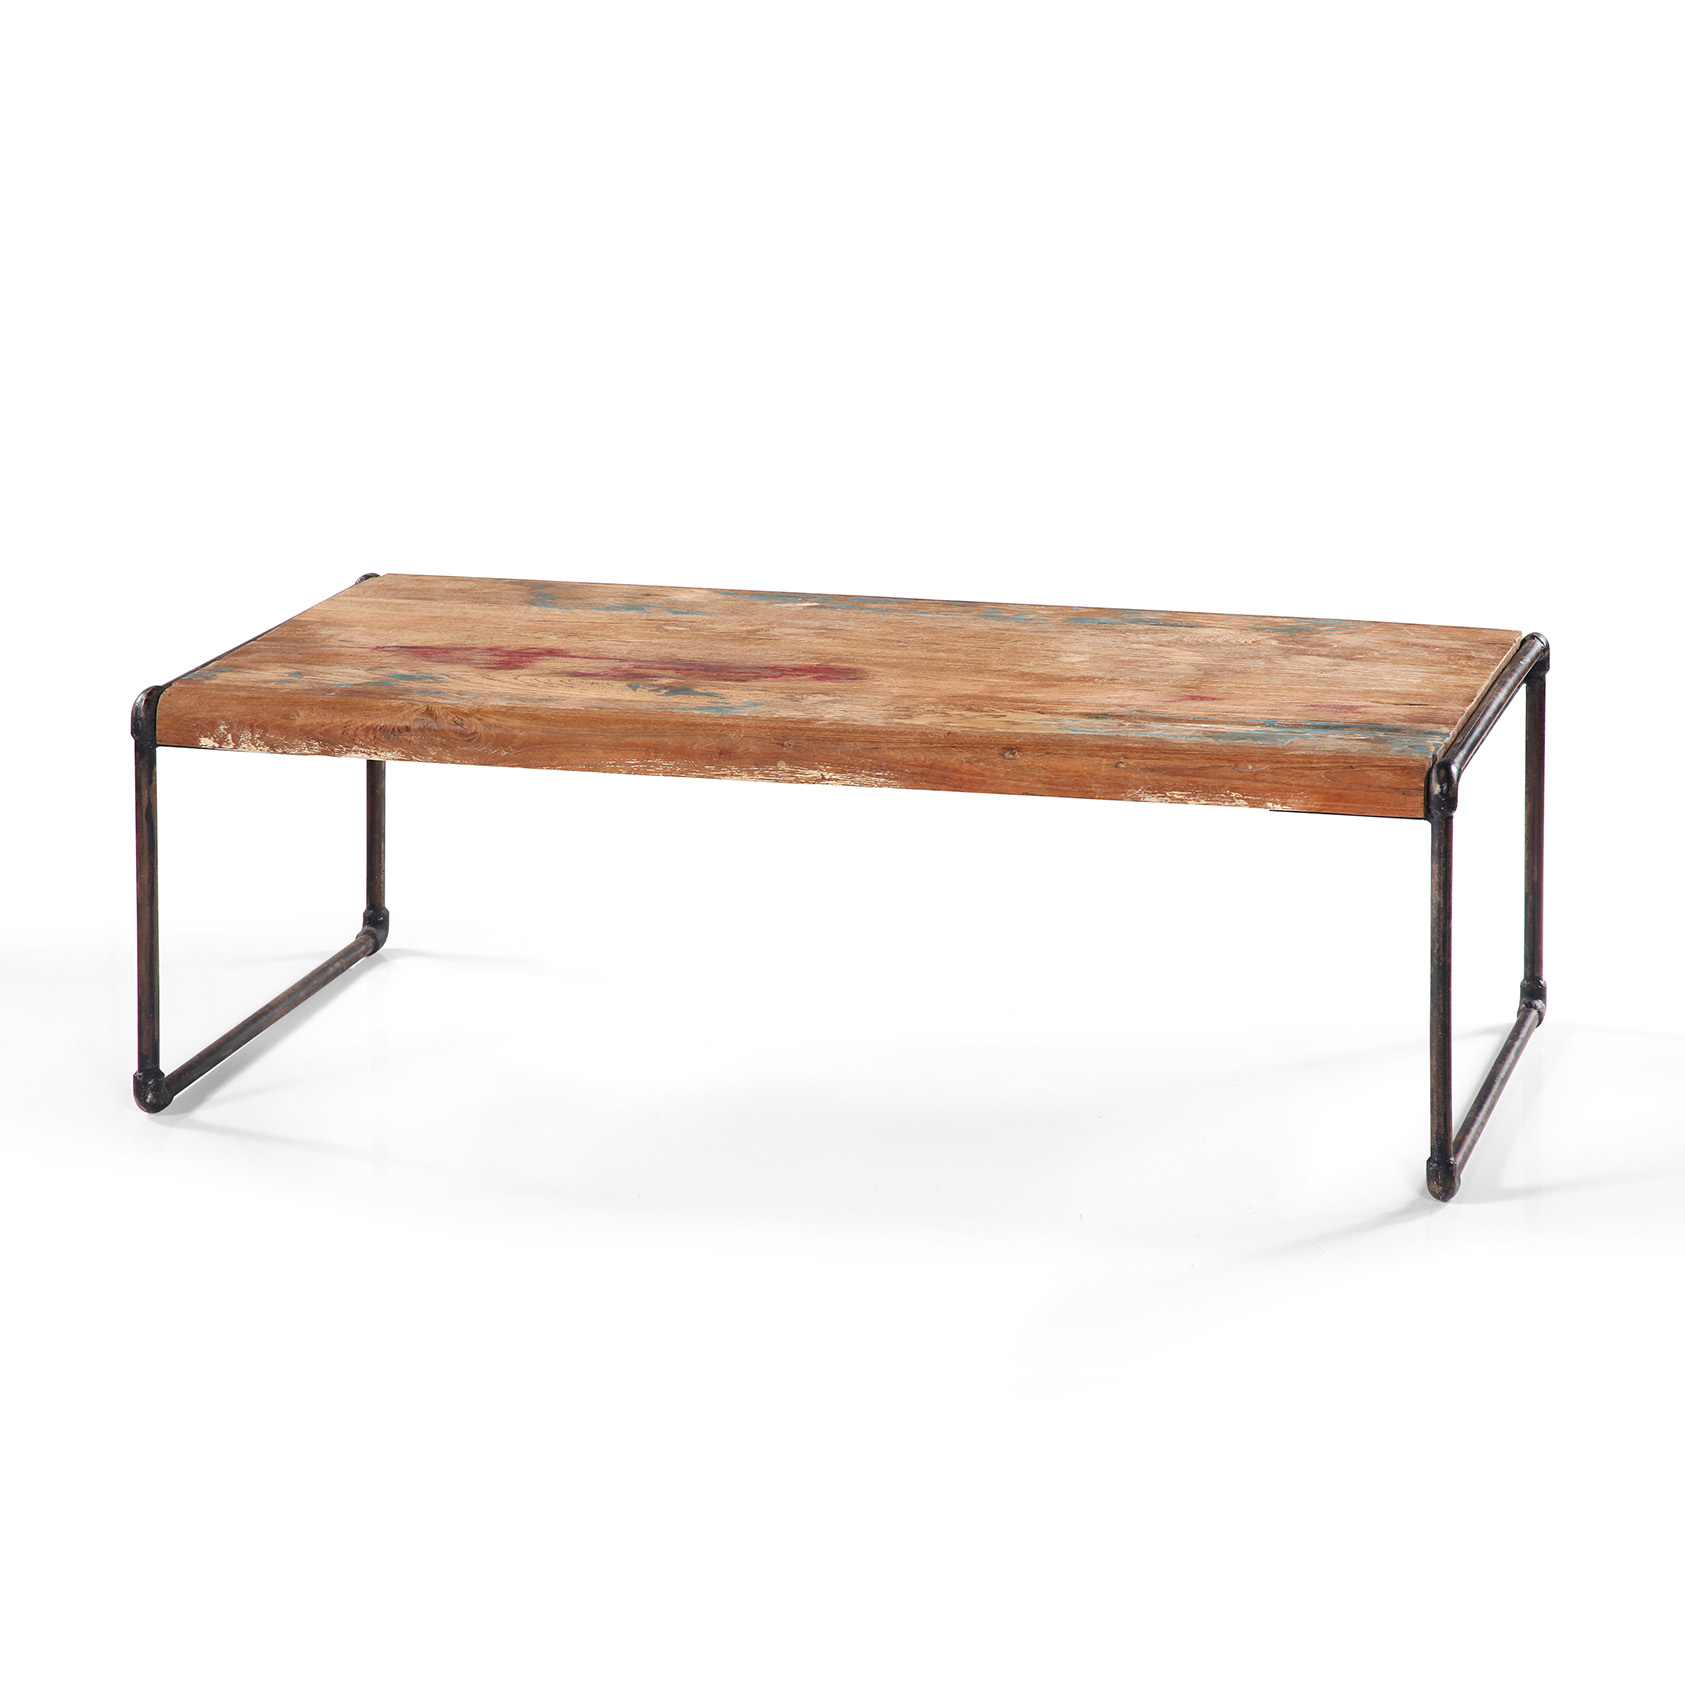 Table basse rectangulaire en teck massif recycl lombock - Petite table basse rectangulaire ...